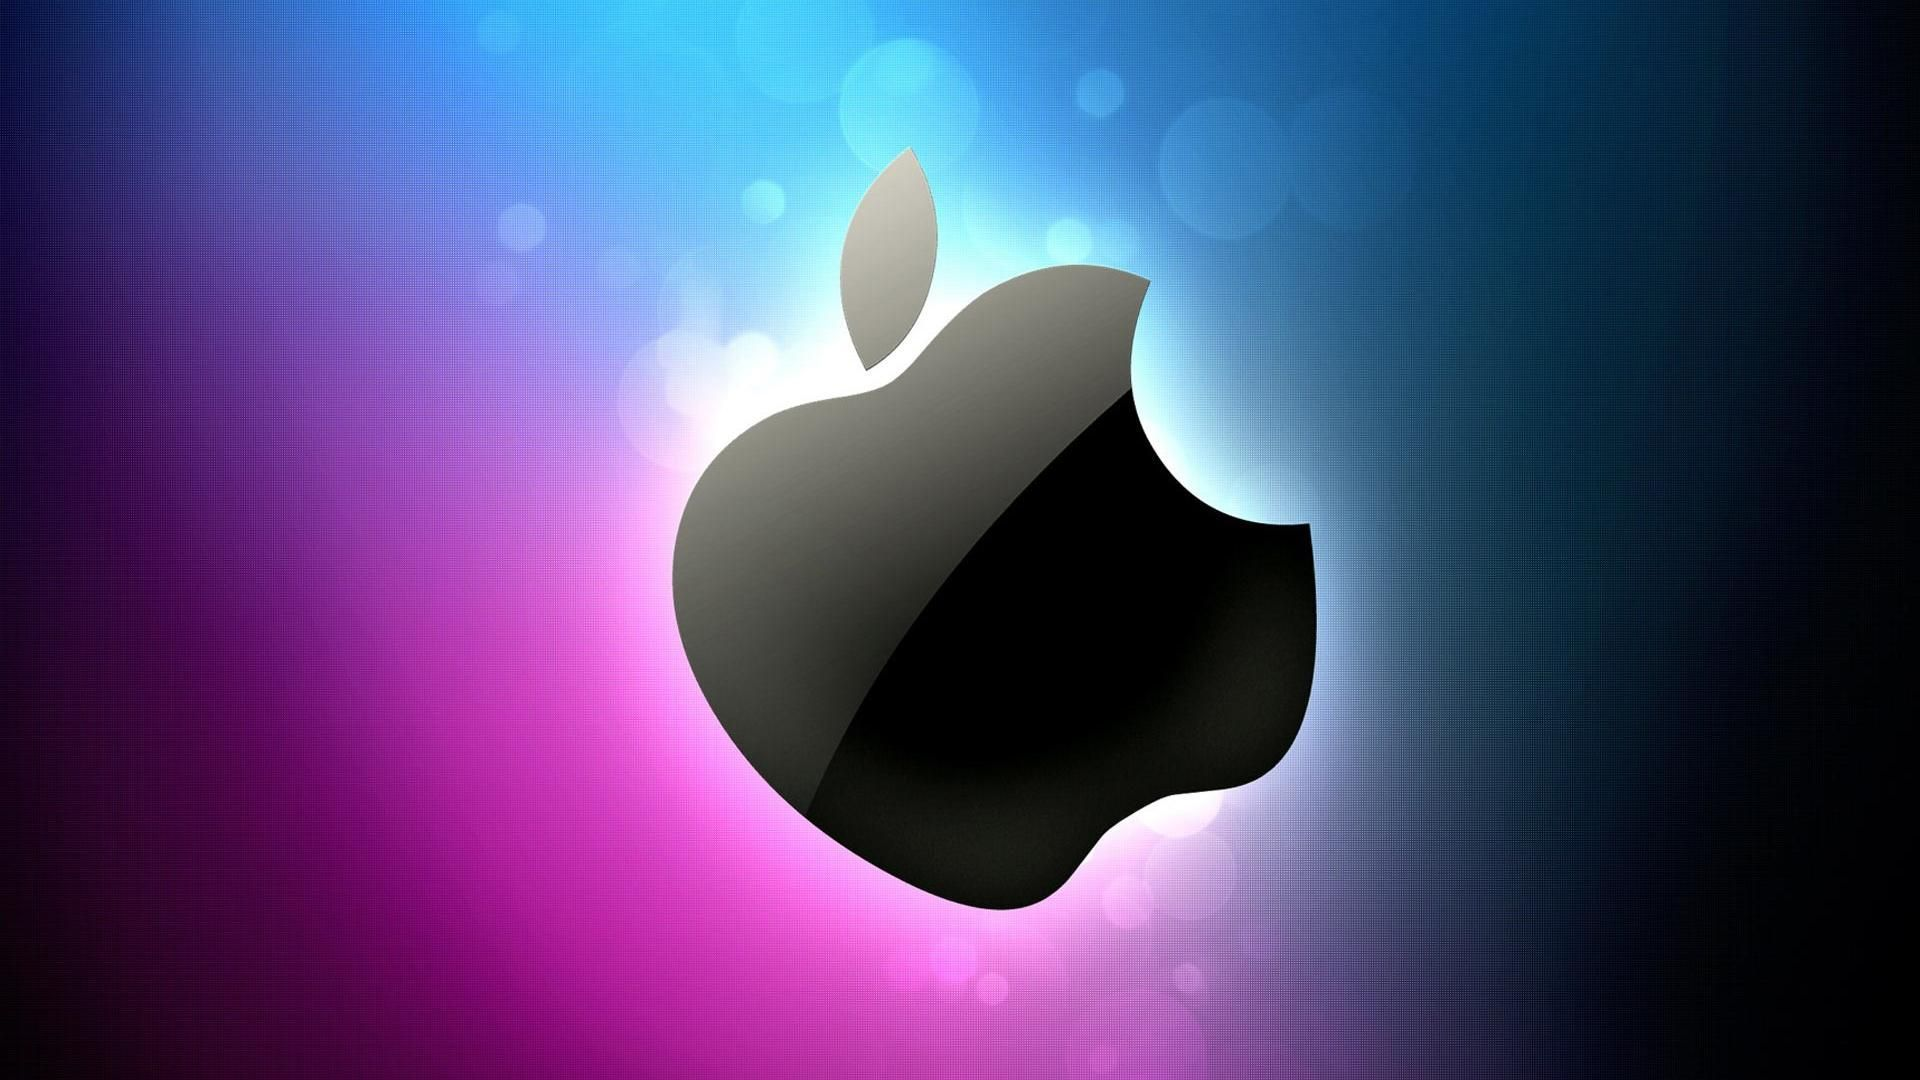 Cool Apple Backgrounds 43 Wallpapers Hd Wallpapers Cool Backgrounds Cool Backgrounds Wallpapers Cool Wallpaper